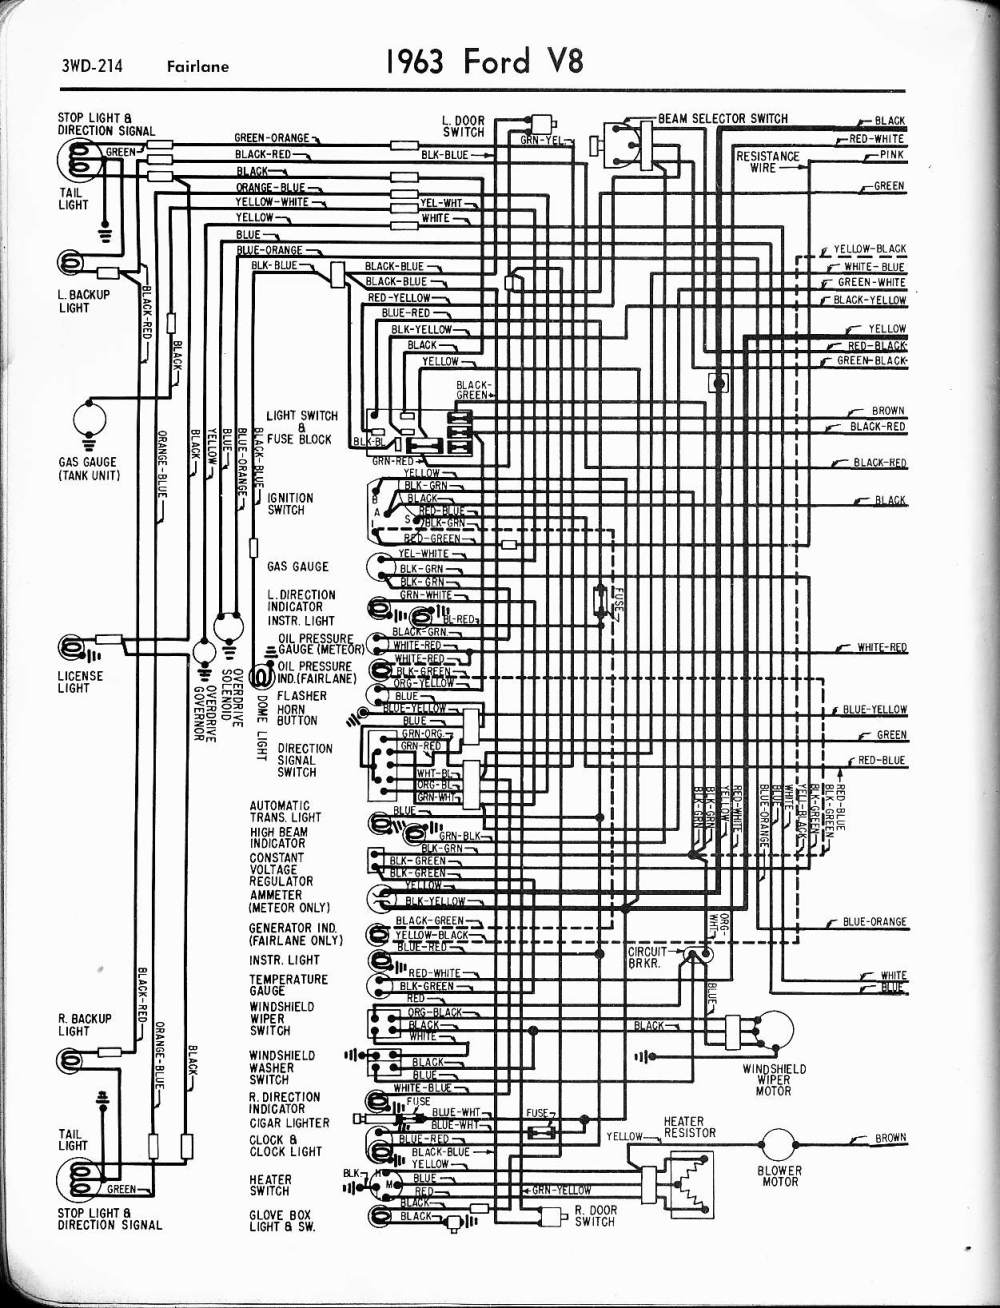 medium resolution of 1956 ford wiring wiring diagram 1956 ford wiring diagram 1956 ford radio schematic wiring diagram toolbox